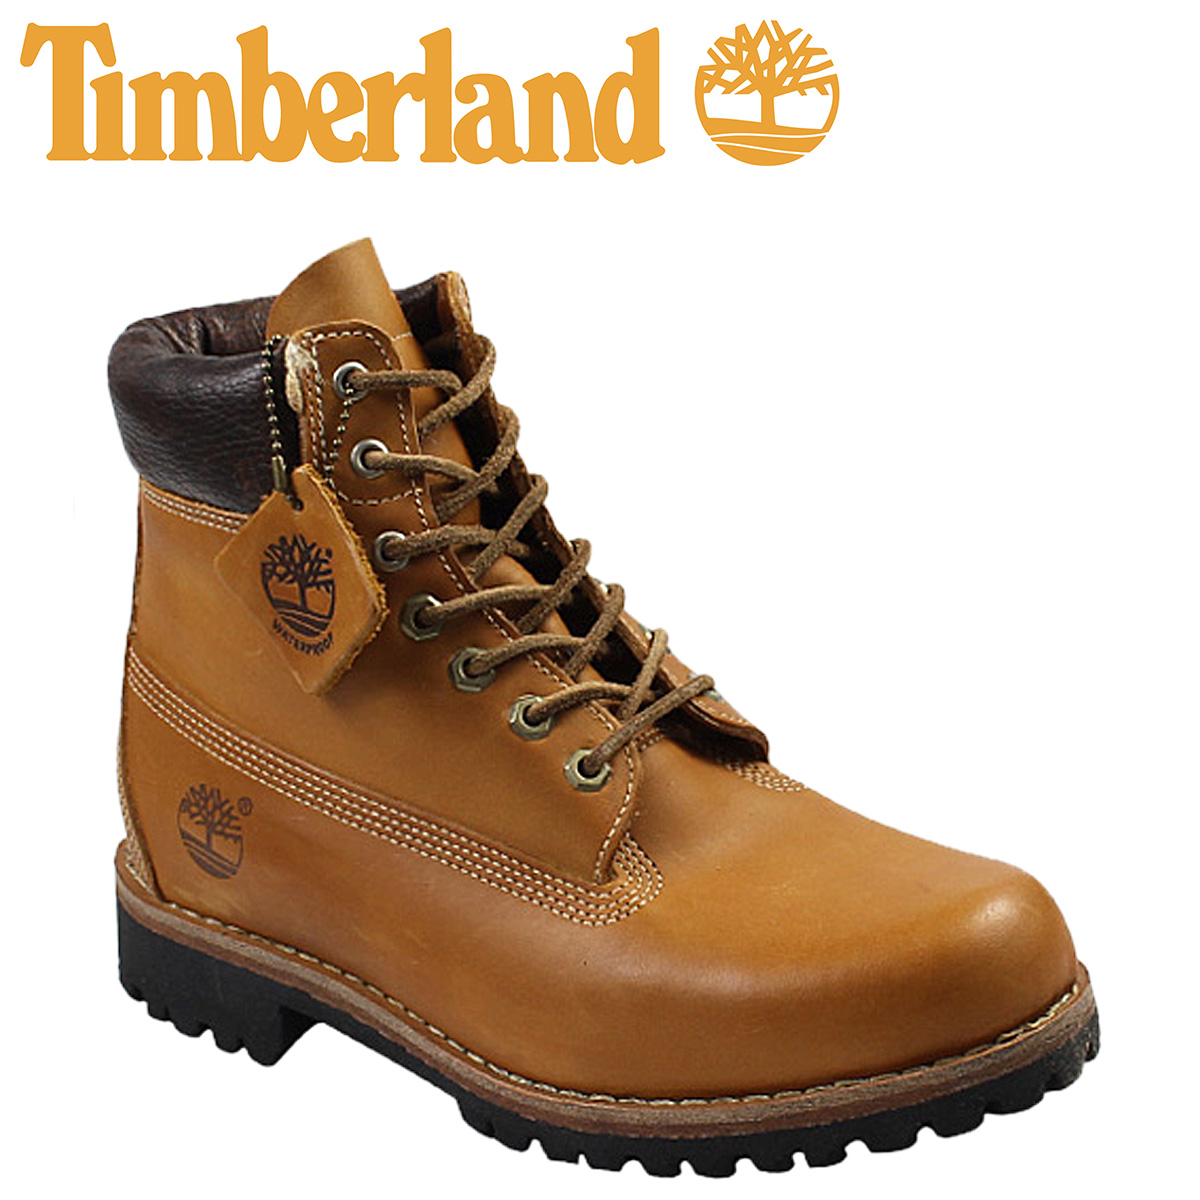 Sold Out Timberland Earthkeepers Heritage Rugged Eltidy Boots Wheat Ltd Boot Leather Men S 5901r Regular